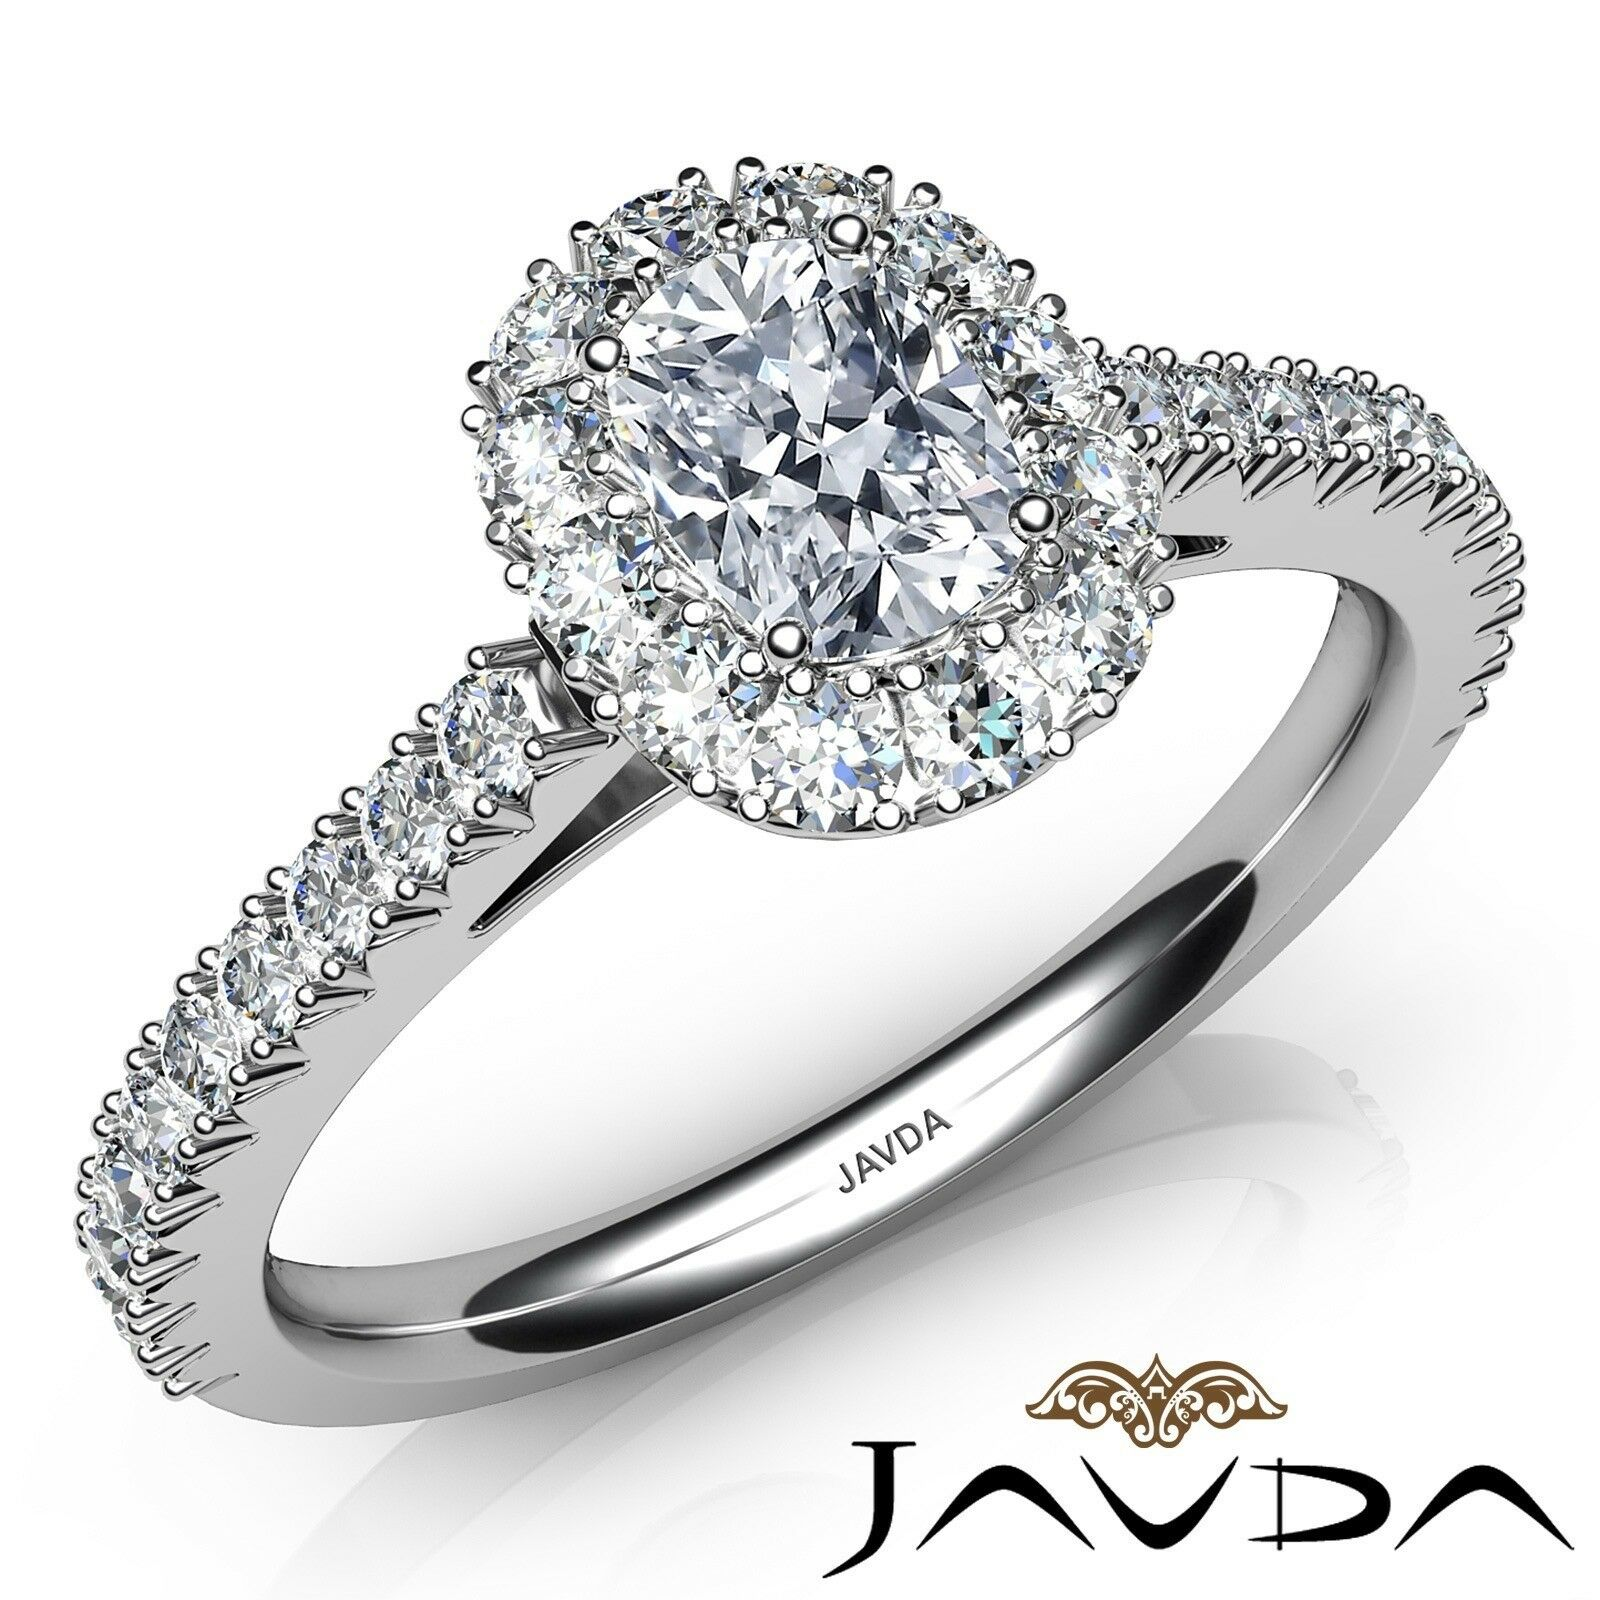 1.6ctw French Pave Set Halo Cushion Diamond Engagement Ring GIA G-SI2 White Gold